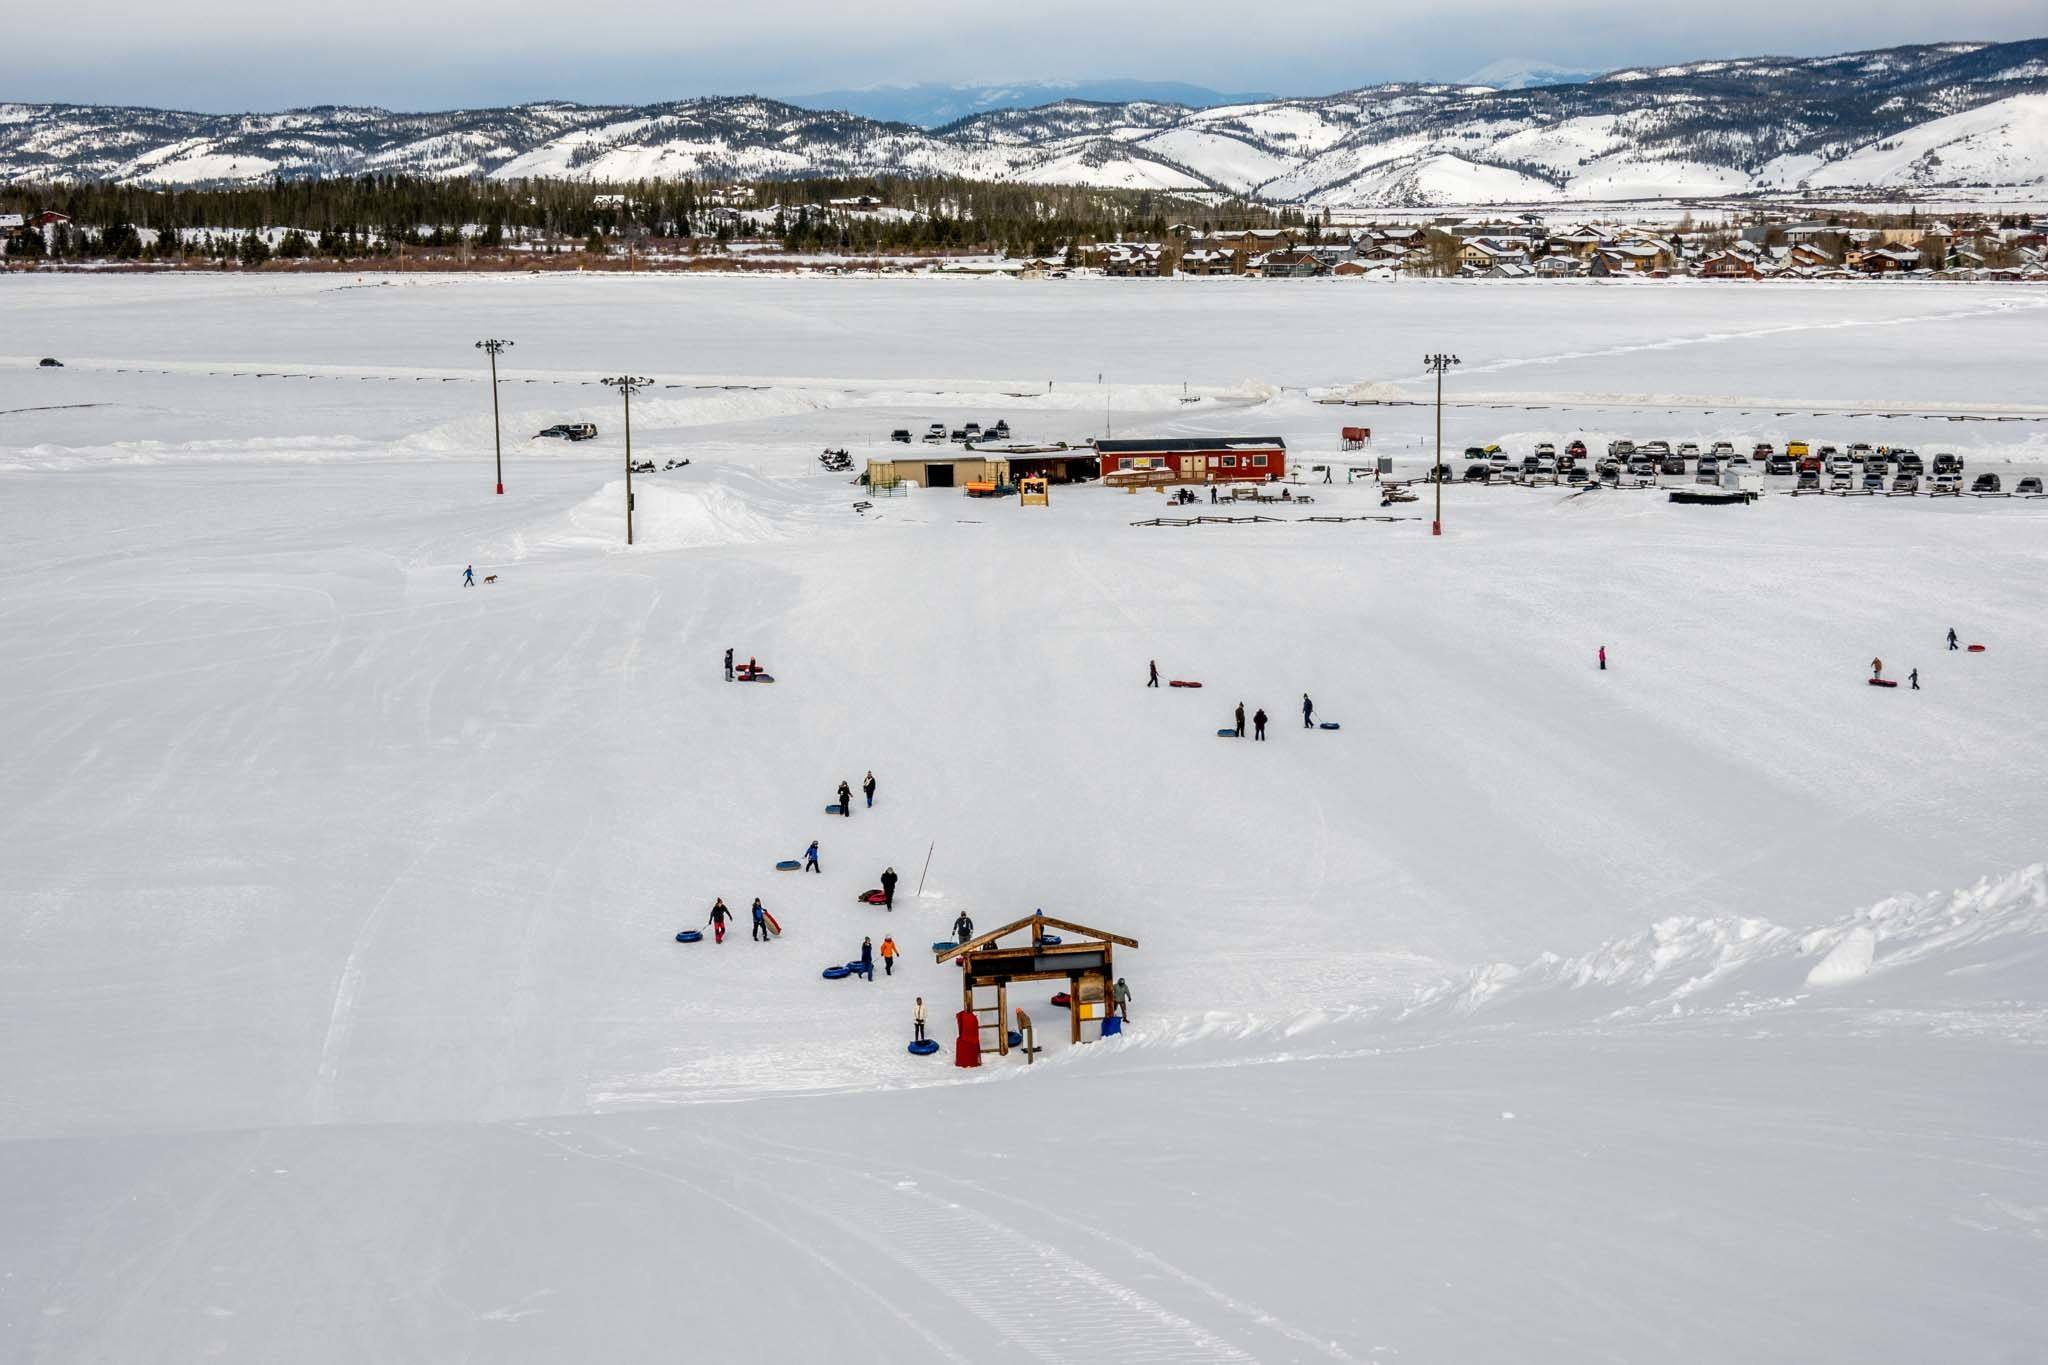 Snow-covered landscape with people snow tubing